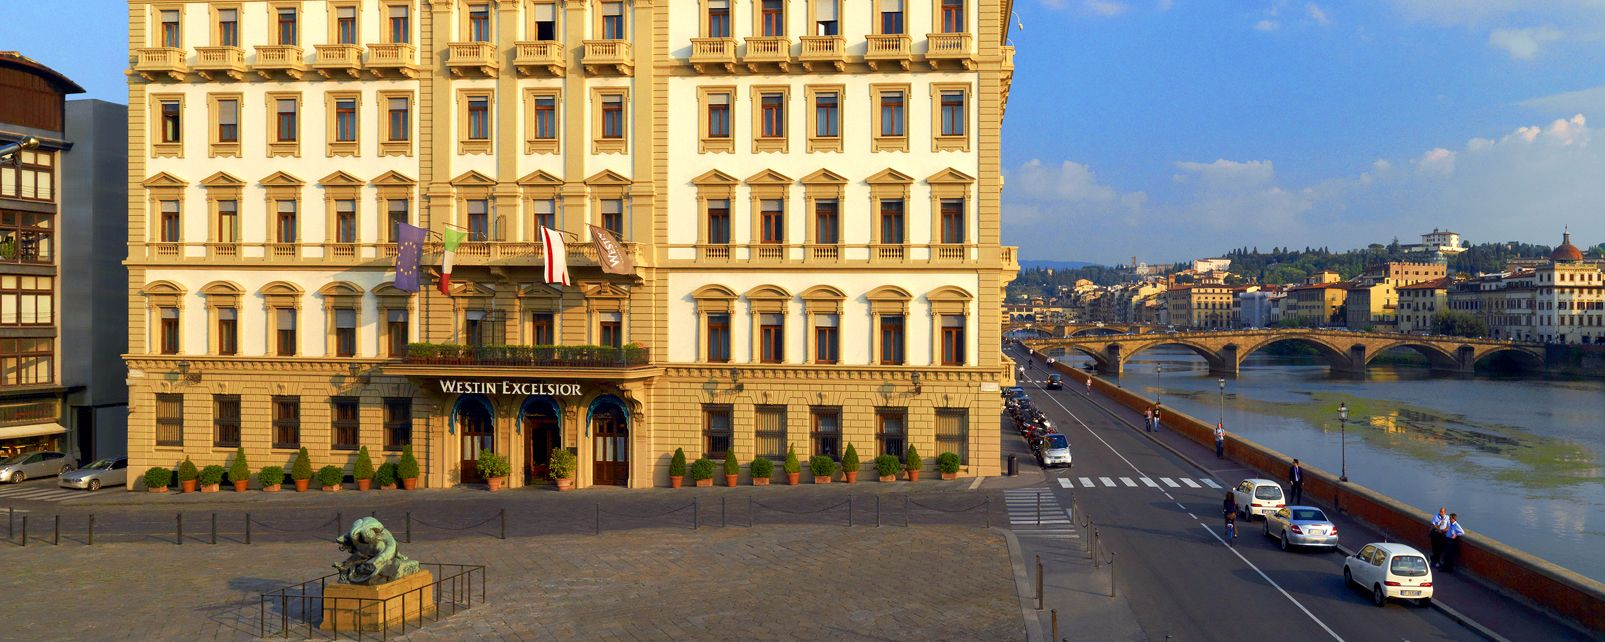 Hotel Westin Excelsior